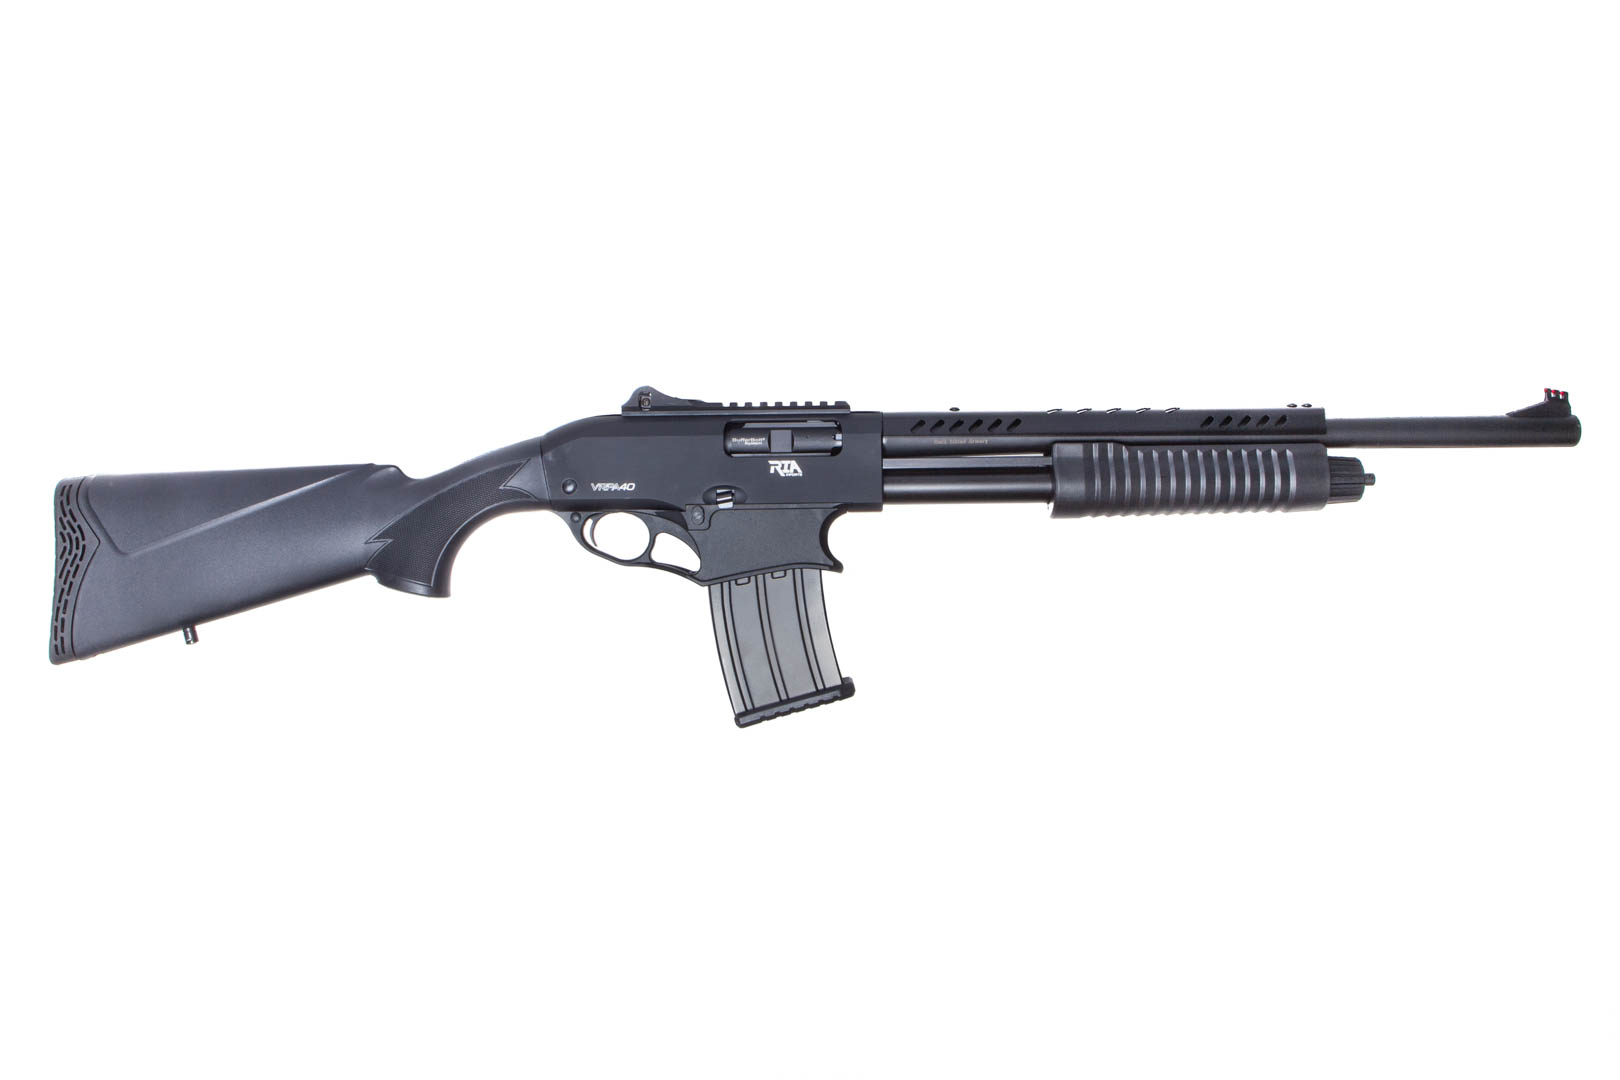 Armscor VRPA40 Pump Action 12 Gauge Shotgun thumbnail